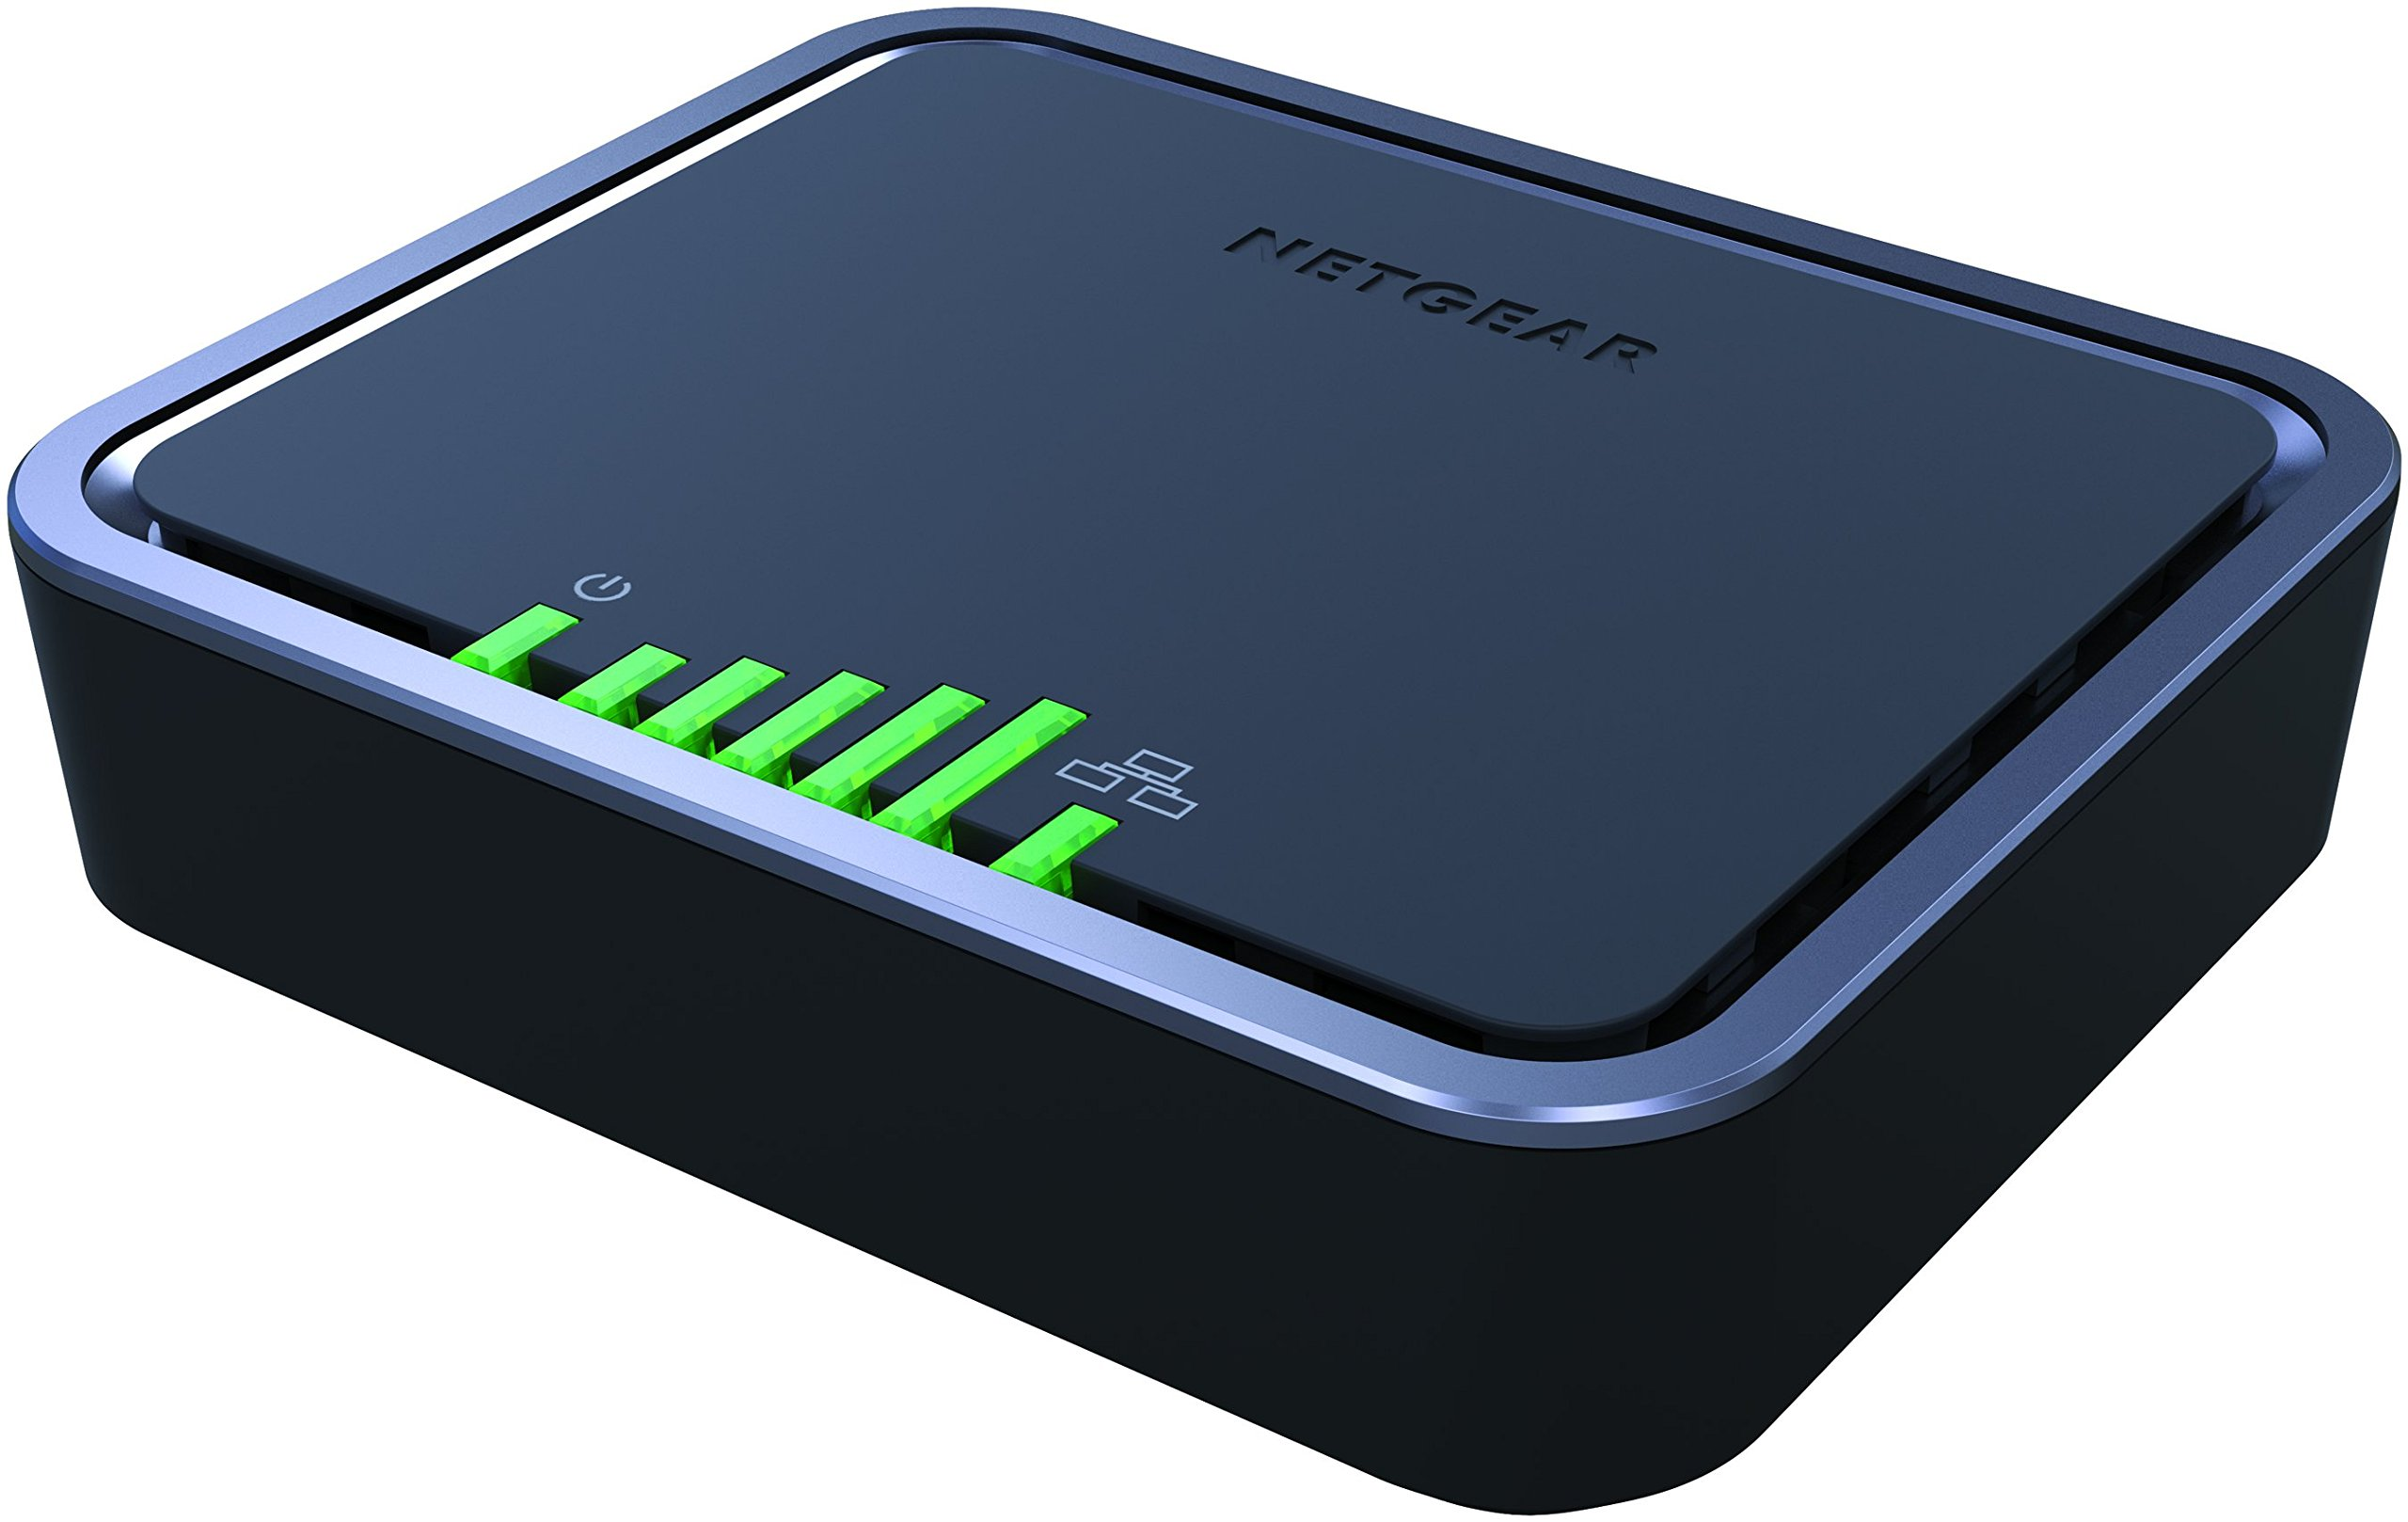 NETGEAR 4G LTE Modem - Instant Broadband Connection | Works with AT&T and Alternate Carriers (LB1120) by NETGEAR